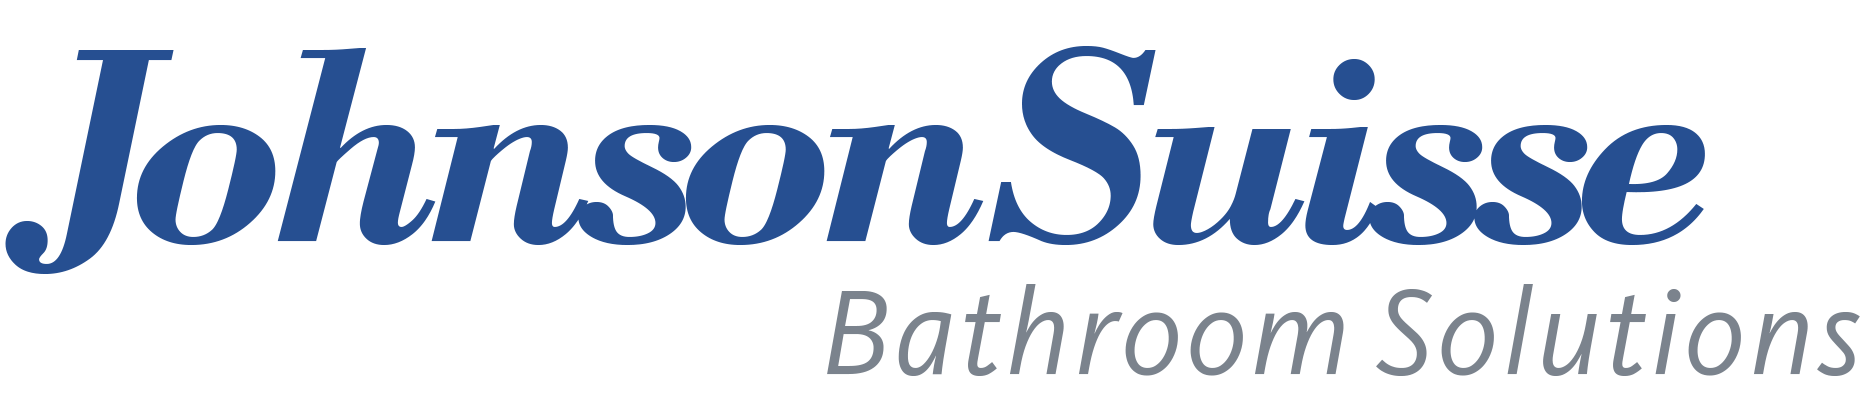 Johnsonsuisse bathroom solutions johnsonsuisse for E bathroom solution sdn bhd